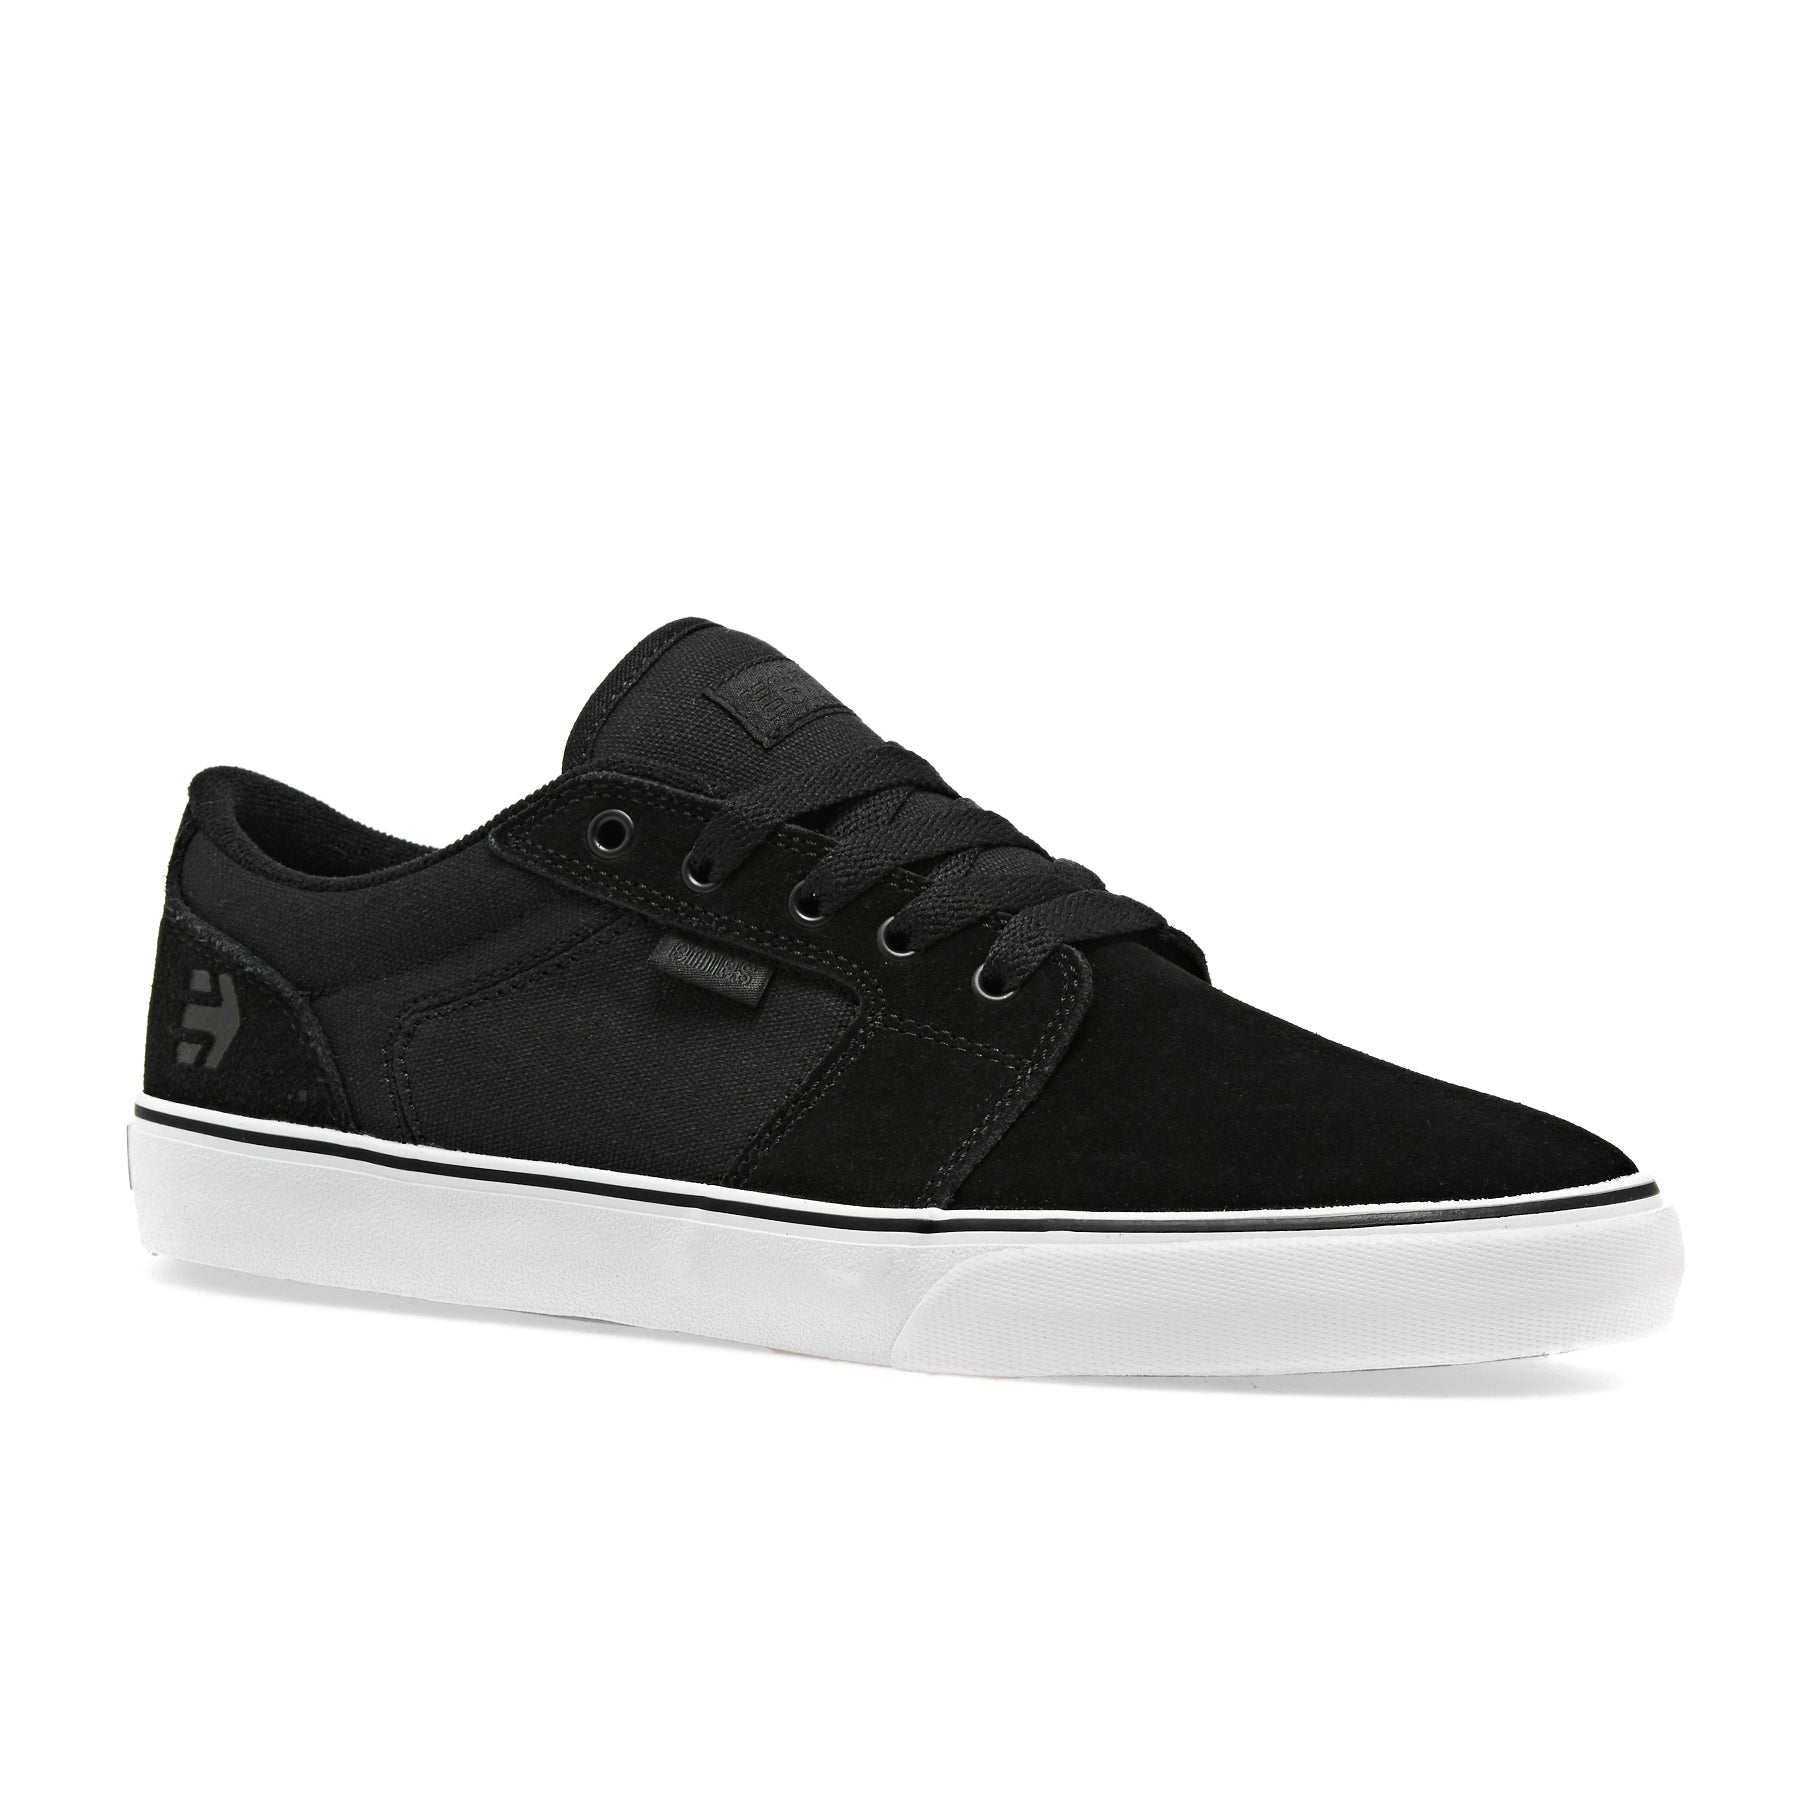 Etnies Barge LS Shoes - Black White Black